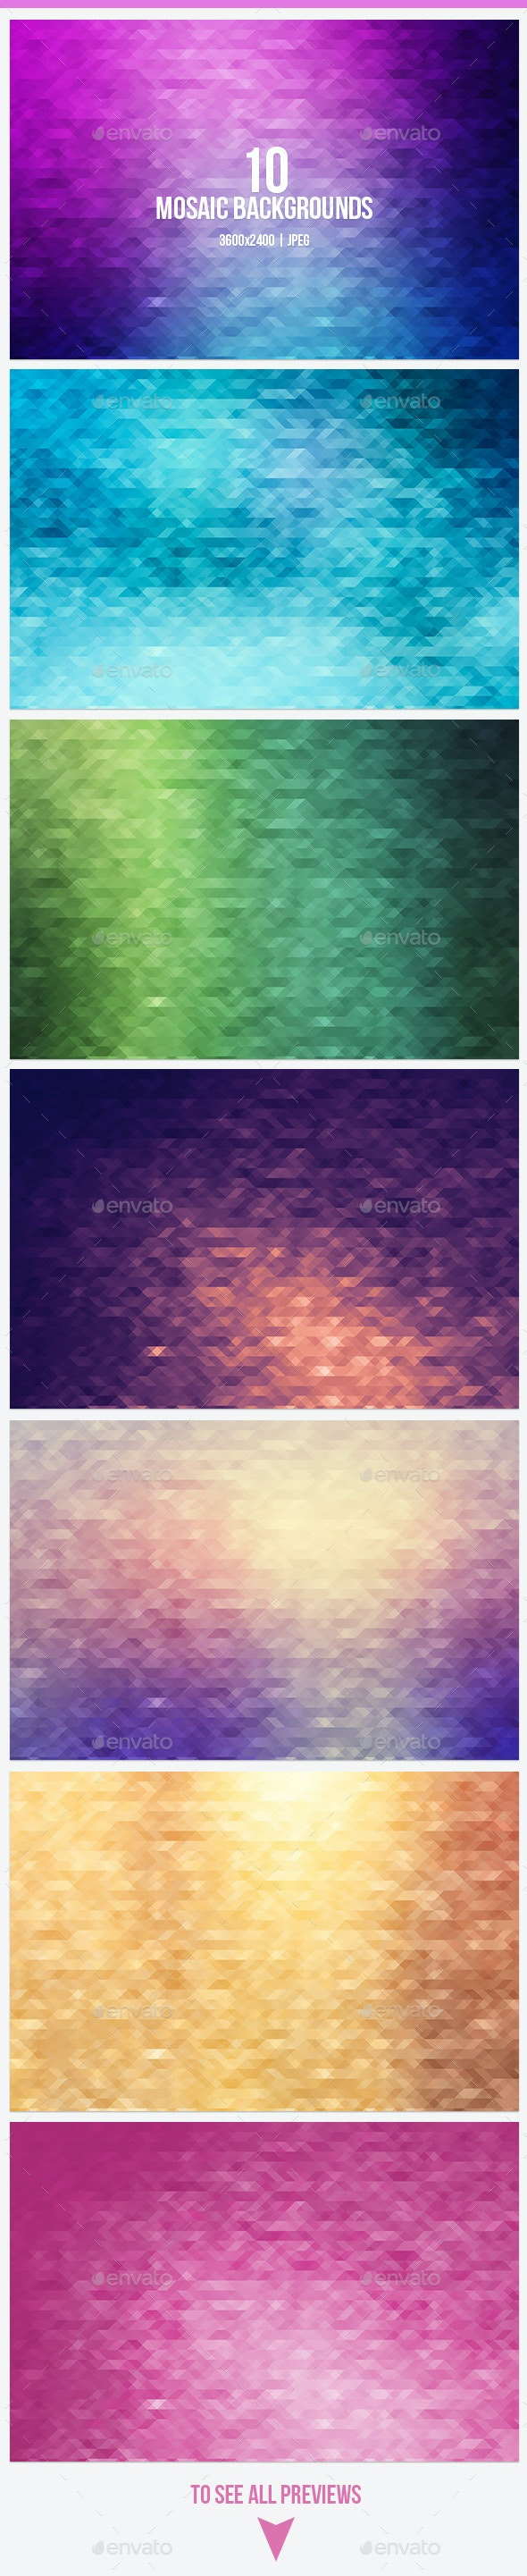 Mosaic Backgrounds - Patterns Backgrounds